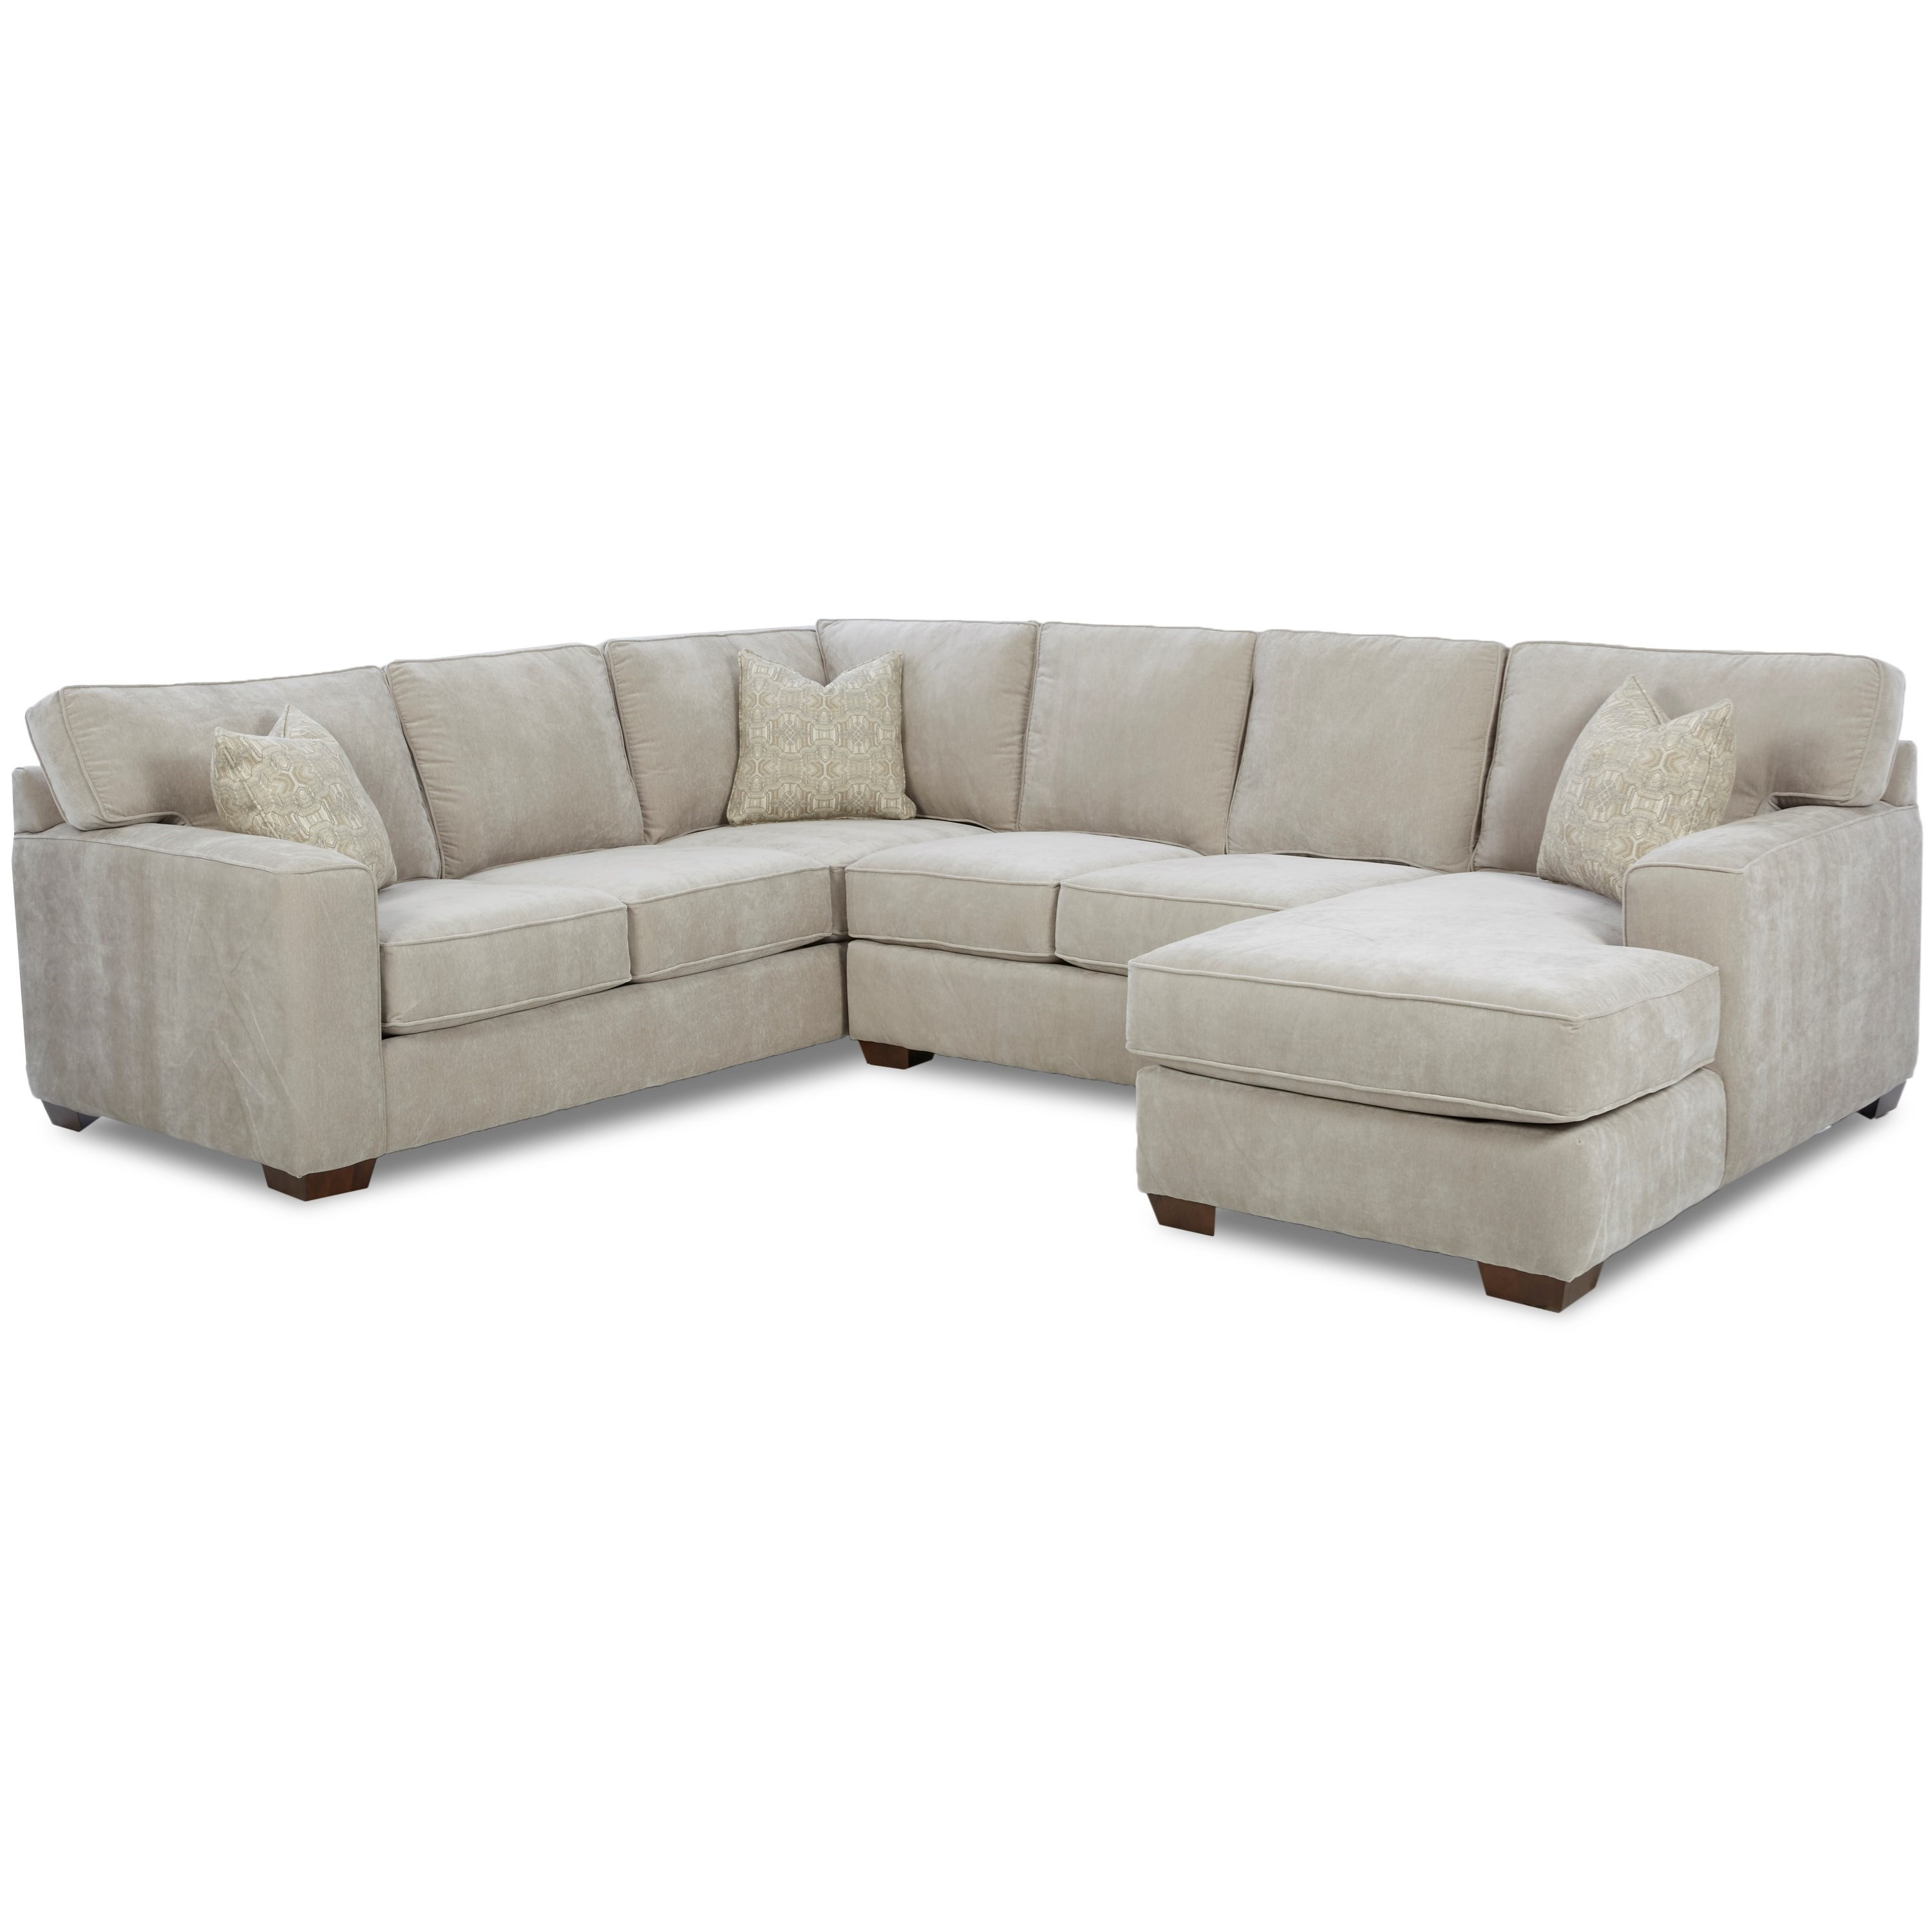 Webster Sectional Group by Klaussner at Northeast Factory Direct